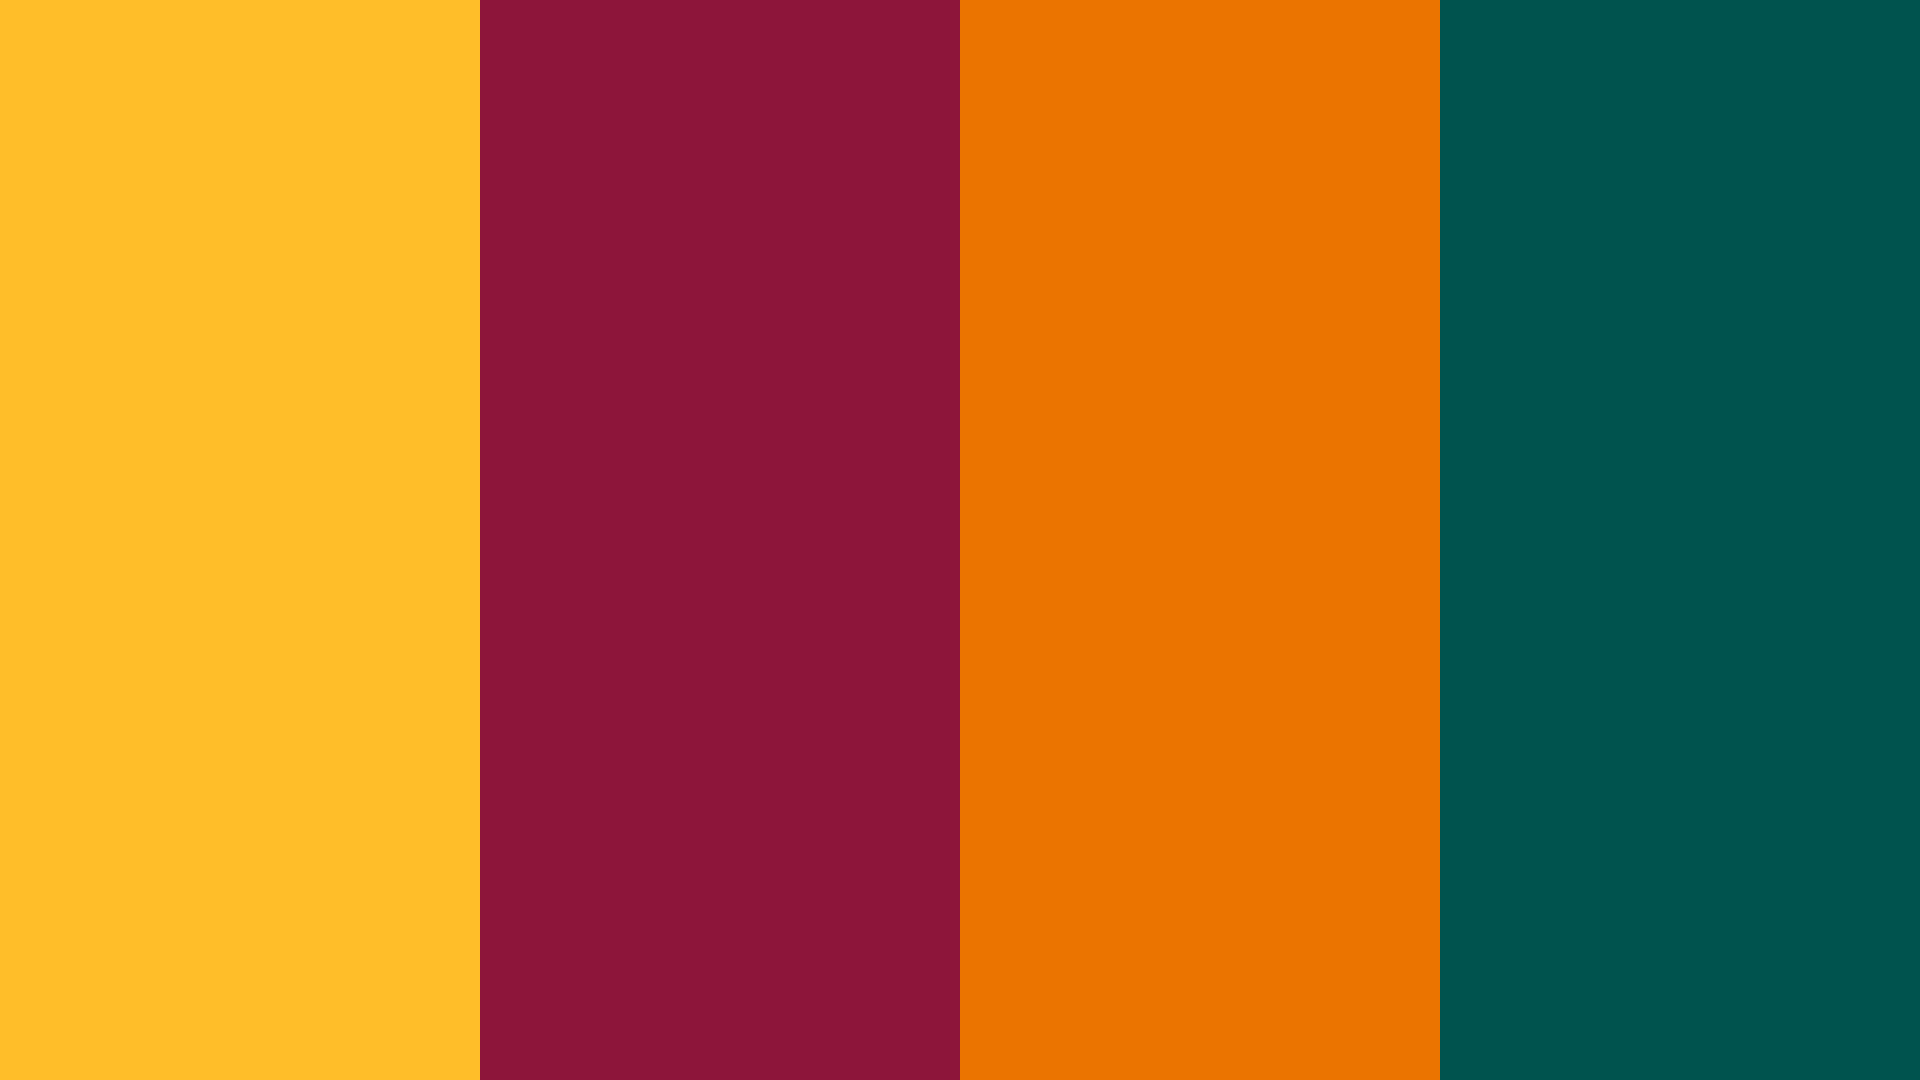 Sri Lanka Flag Color Palette